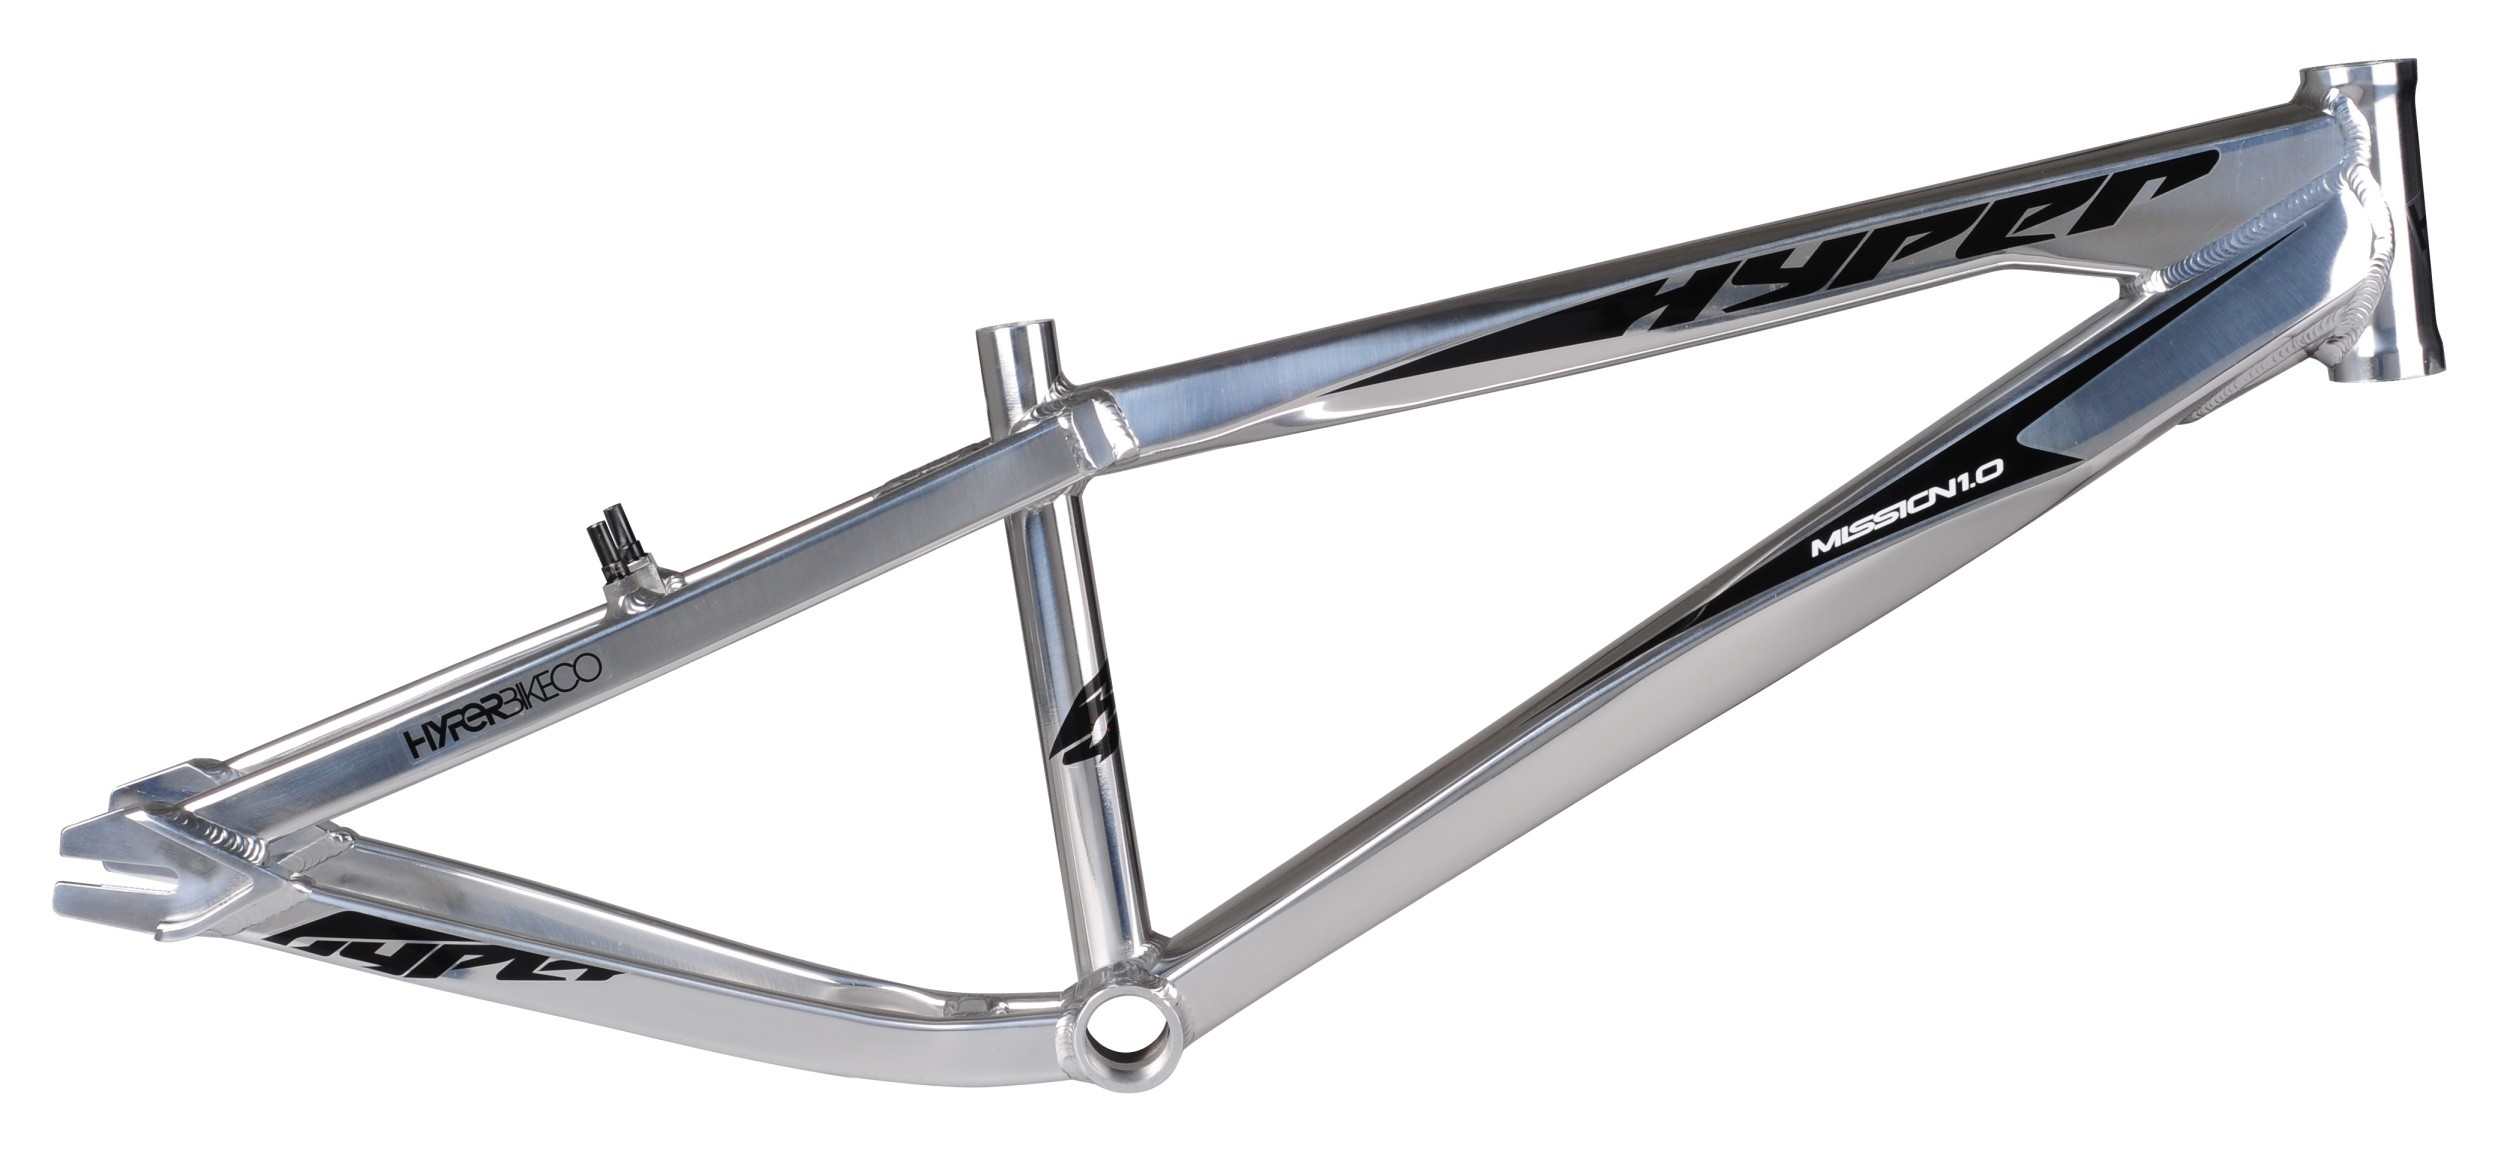 hyper mission one 1 frame race bmx frame  all sizes